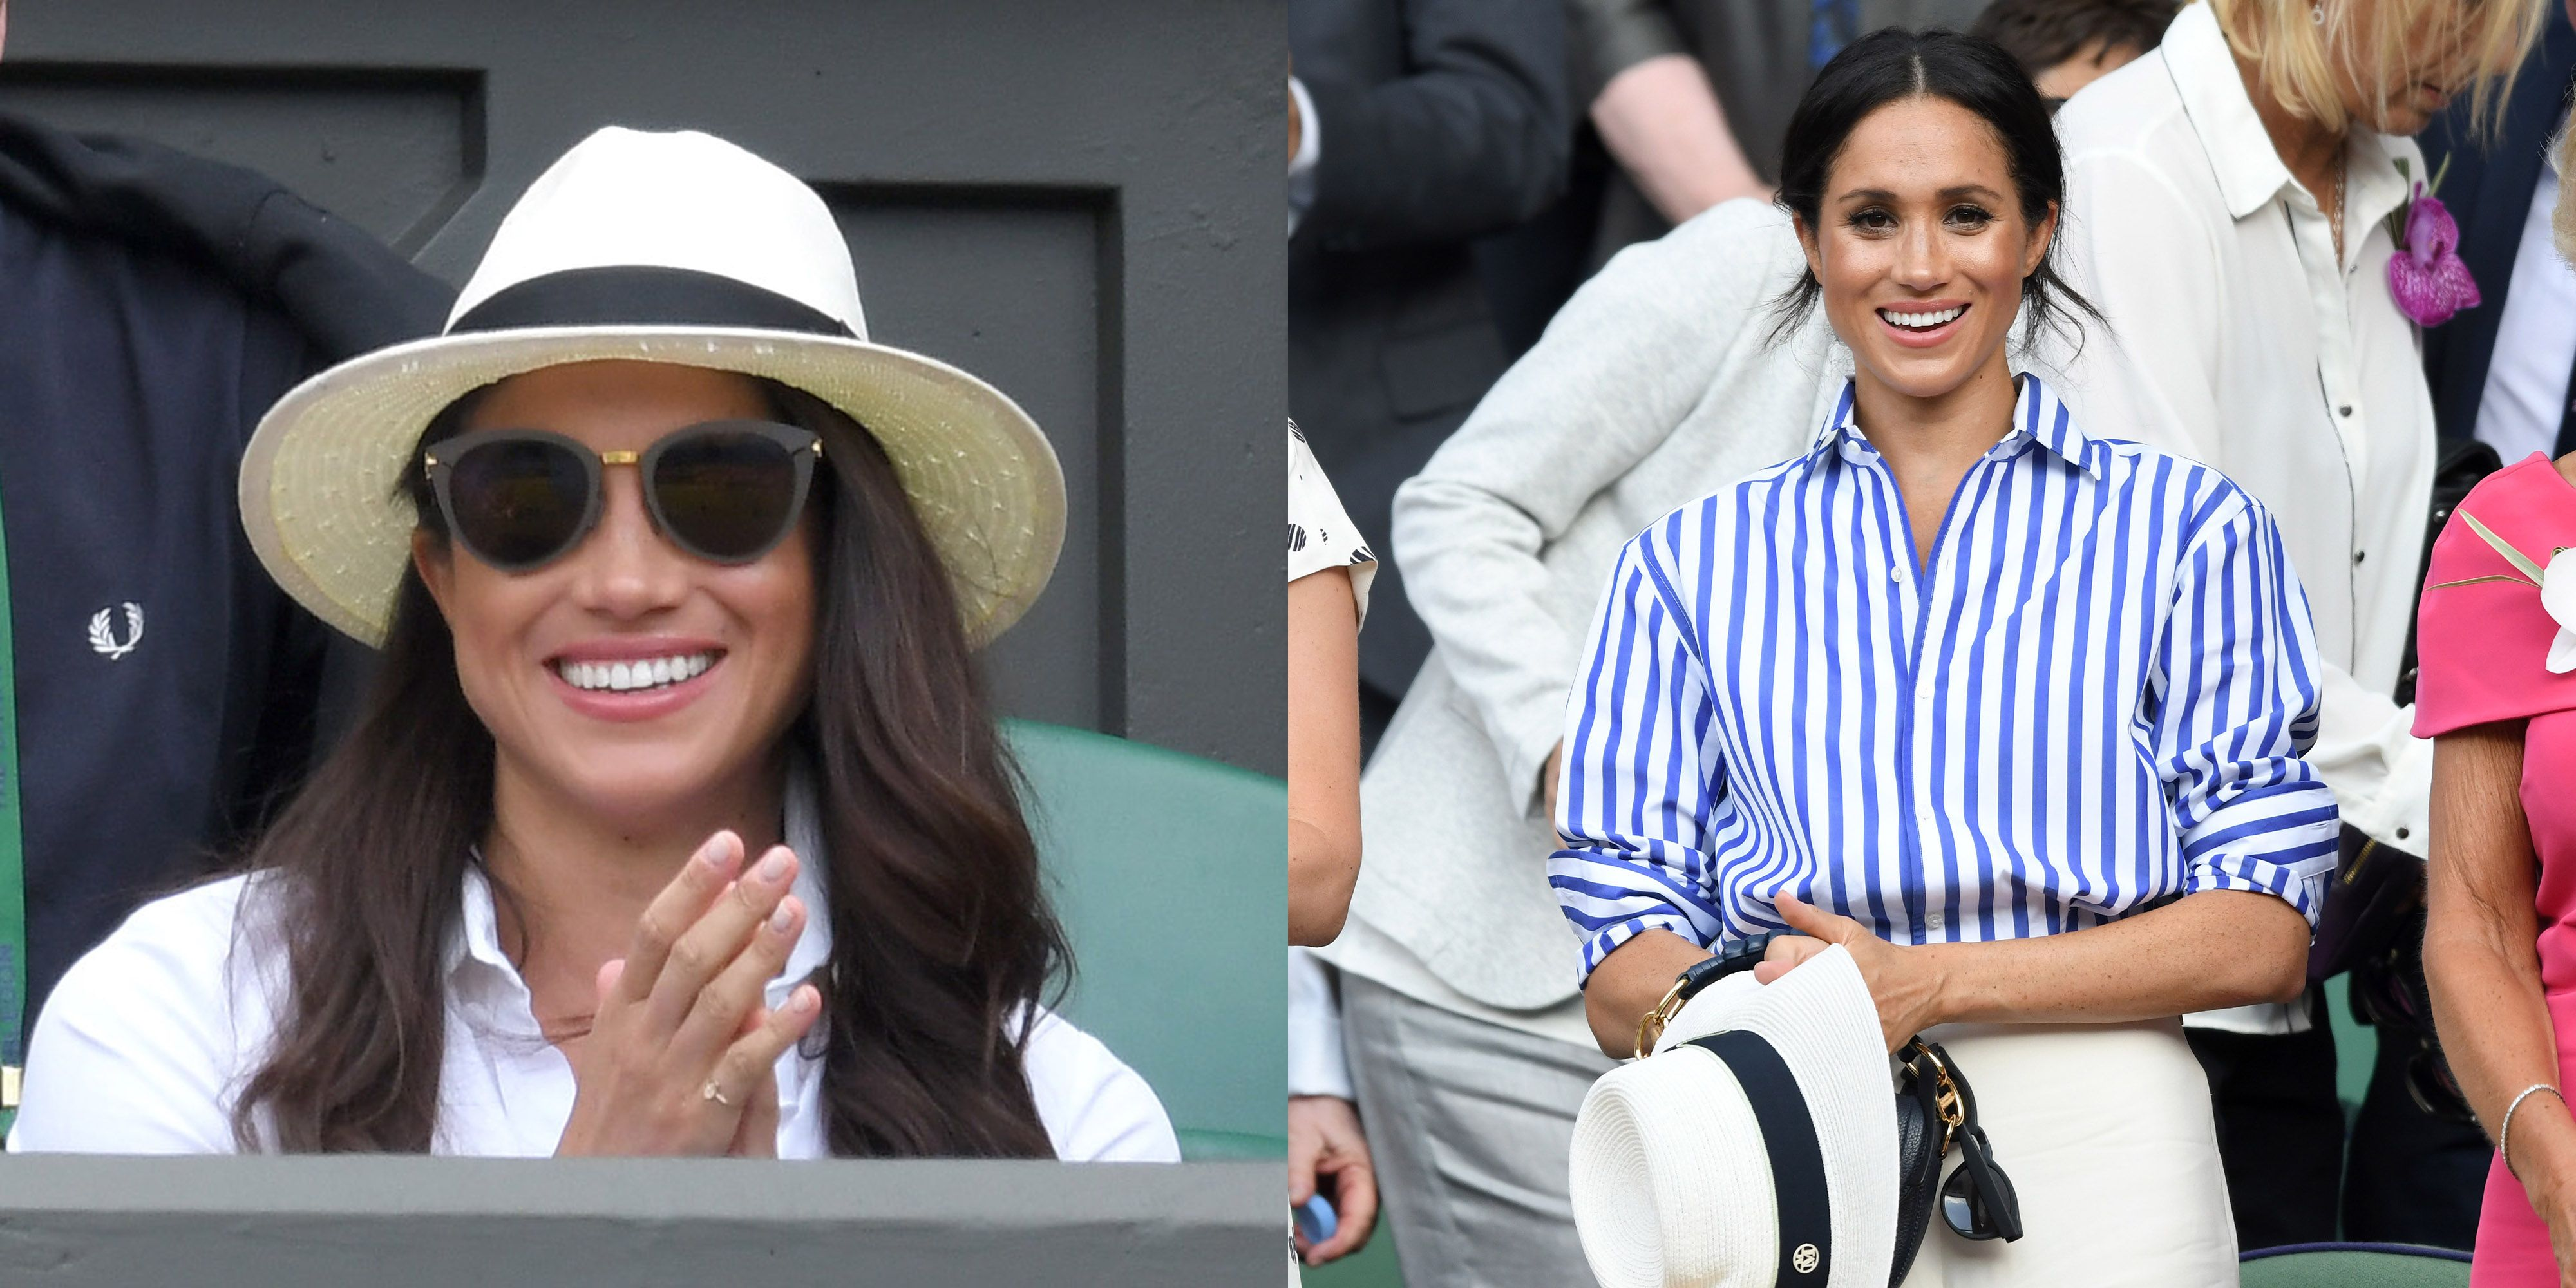 ea3e2aa25b9 Here s Why Meghan Markle Wasn t Allowed to Wear a Hat at Wimbledon This Year